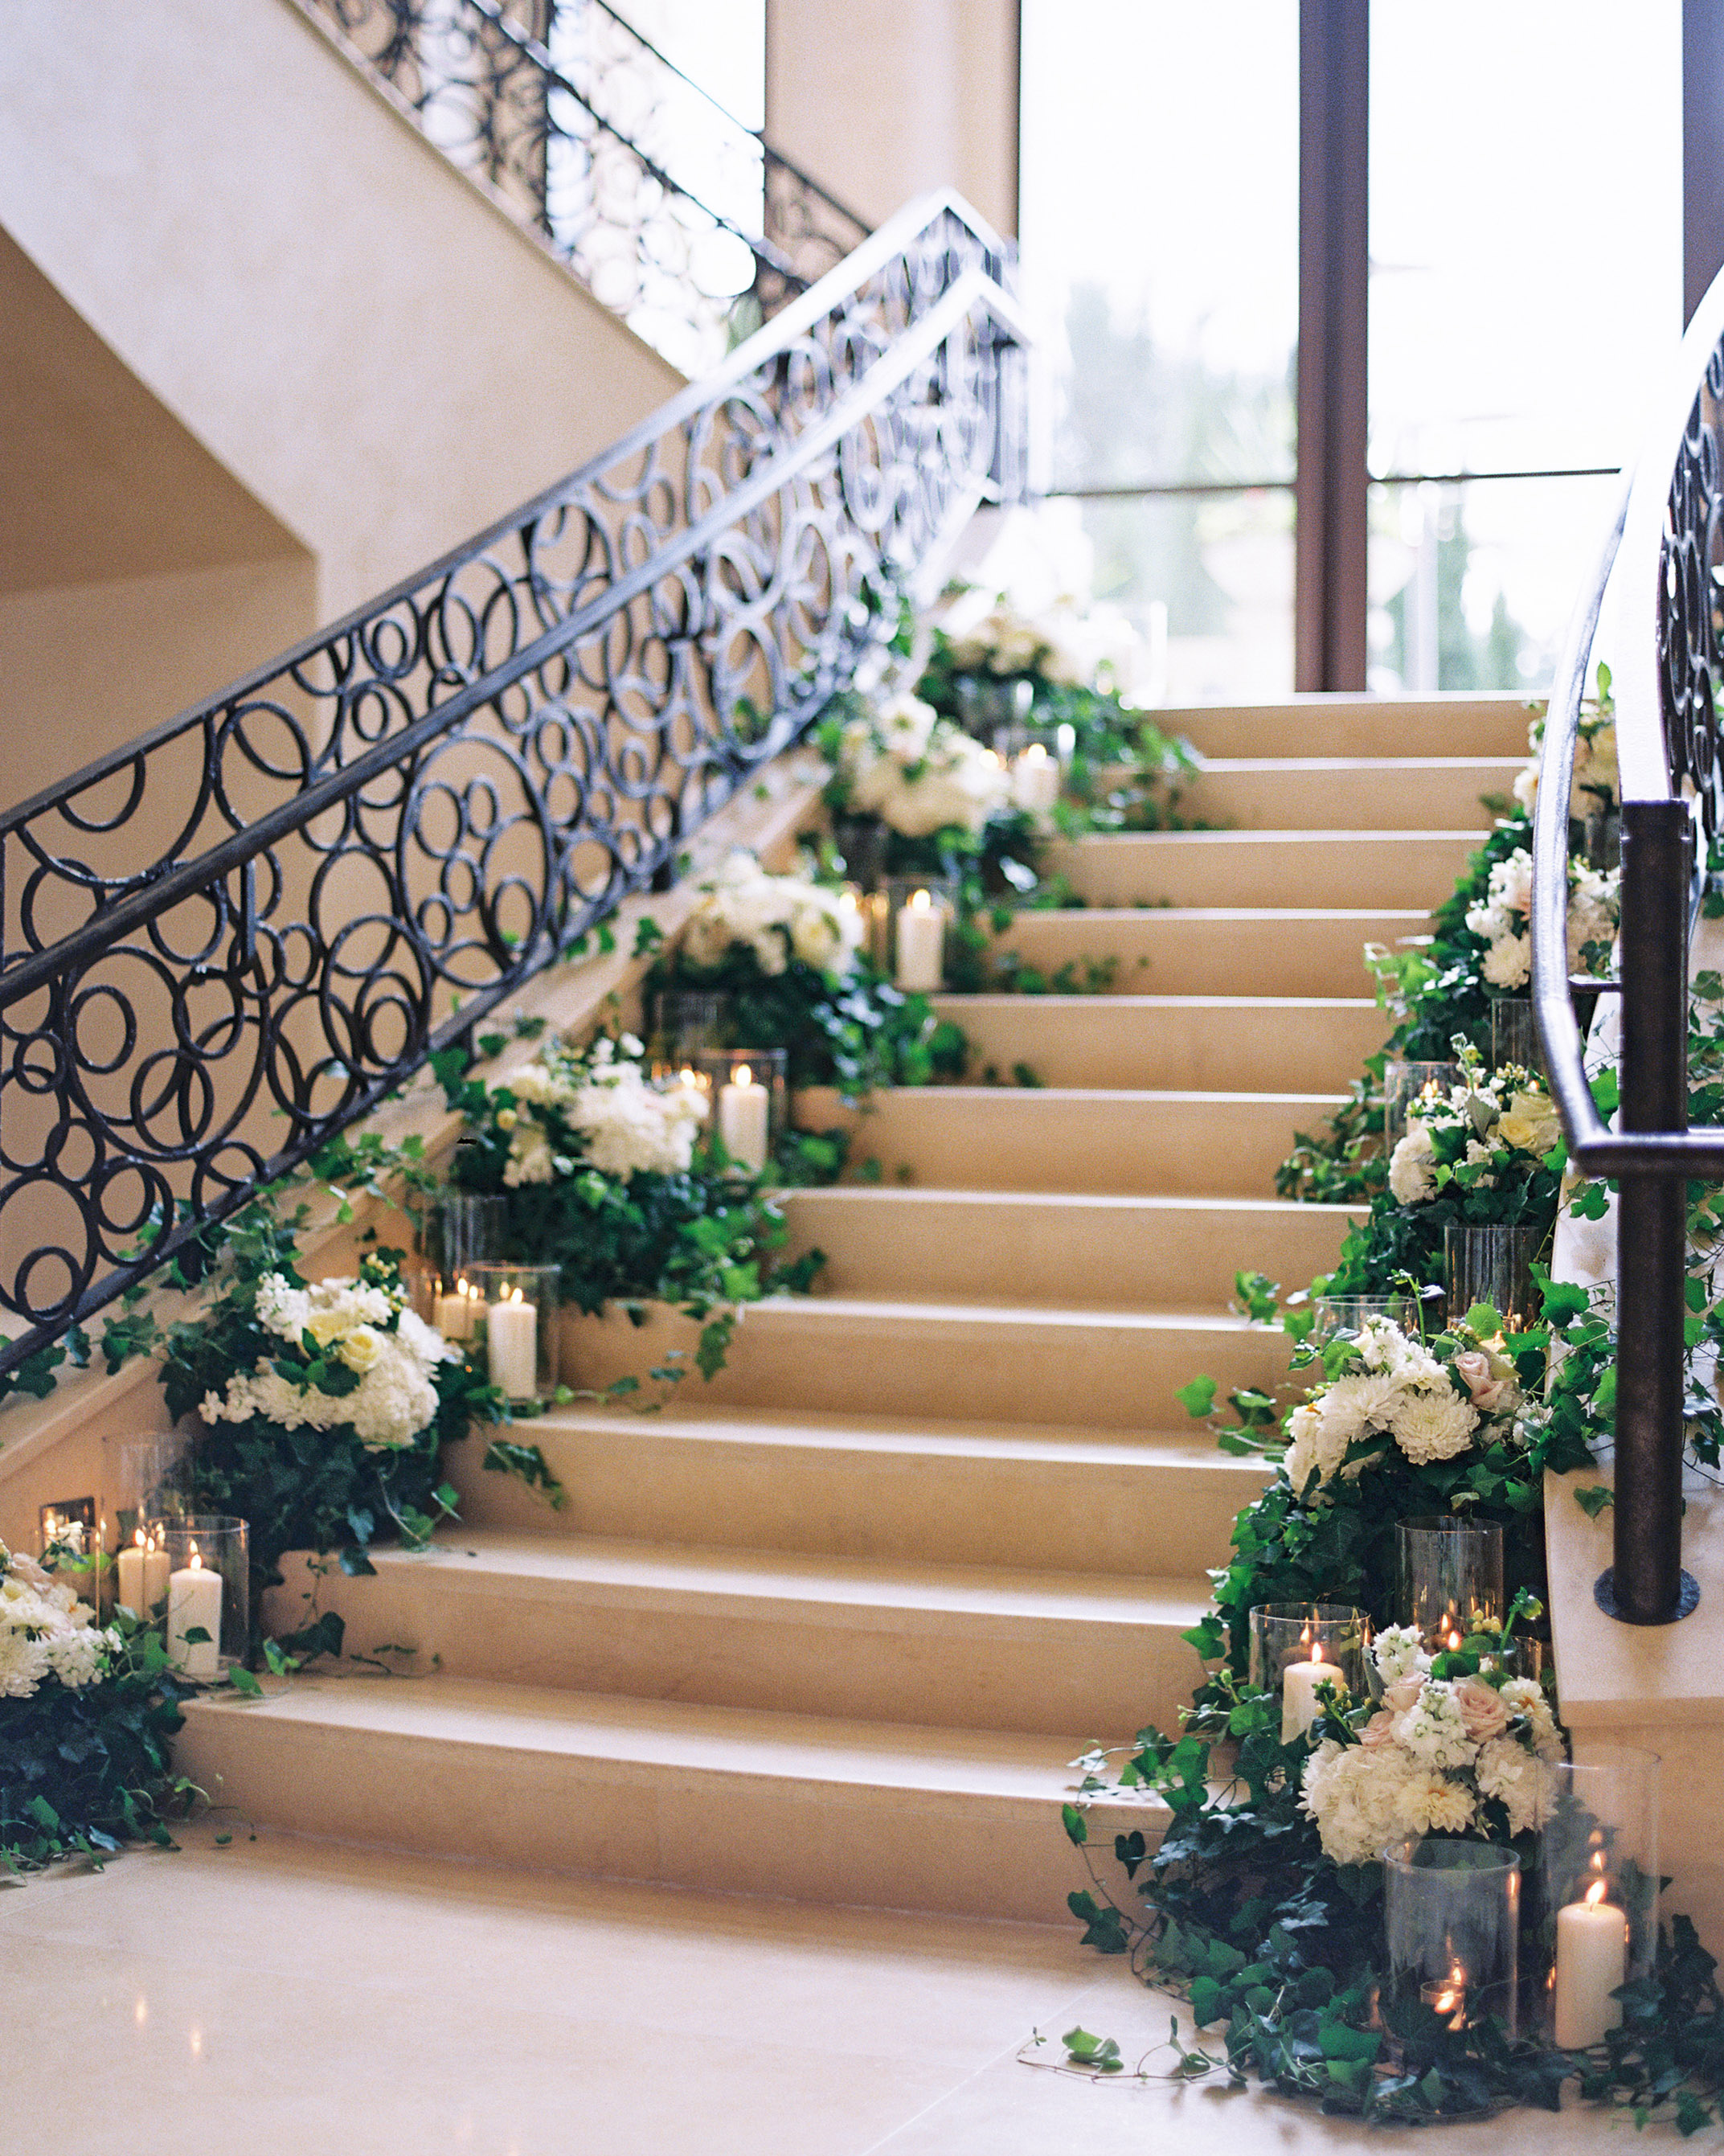 stair banister decor floral candle ceremony backdrop